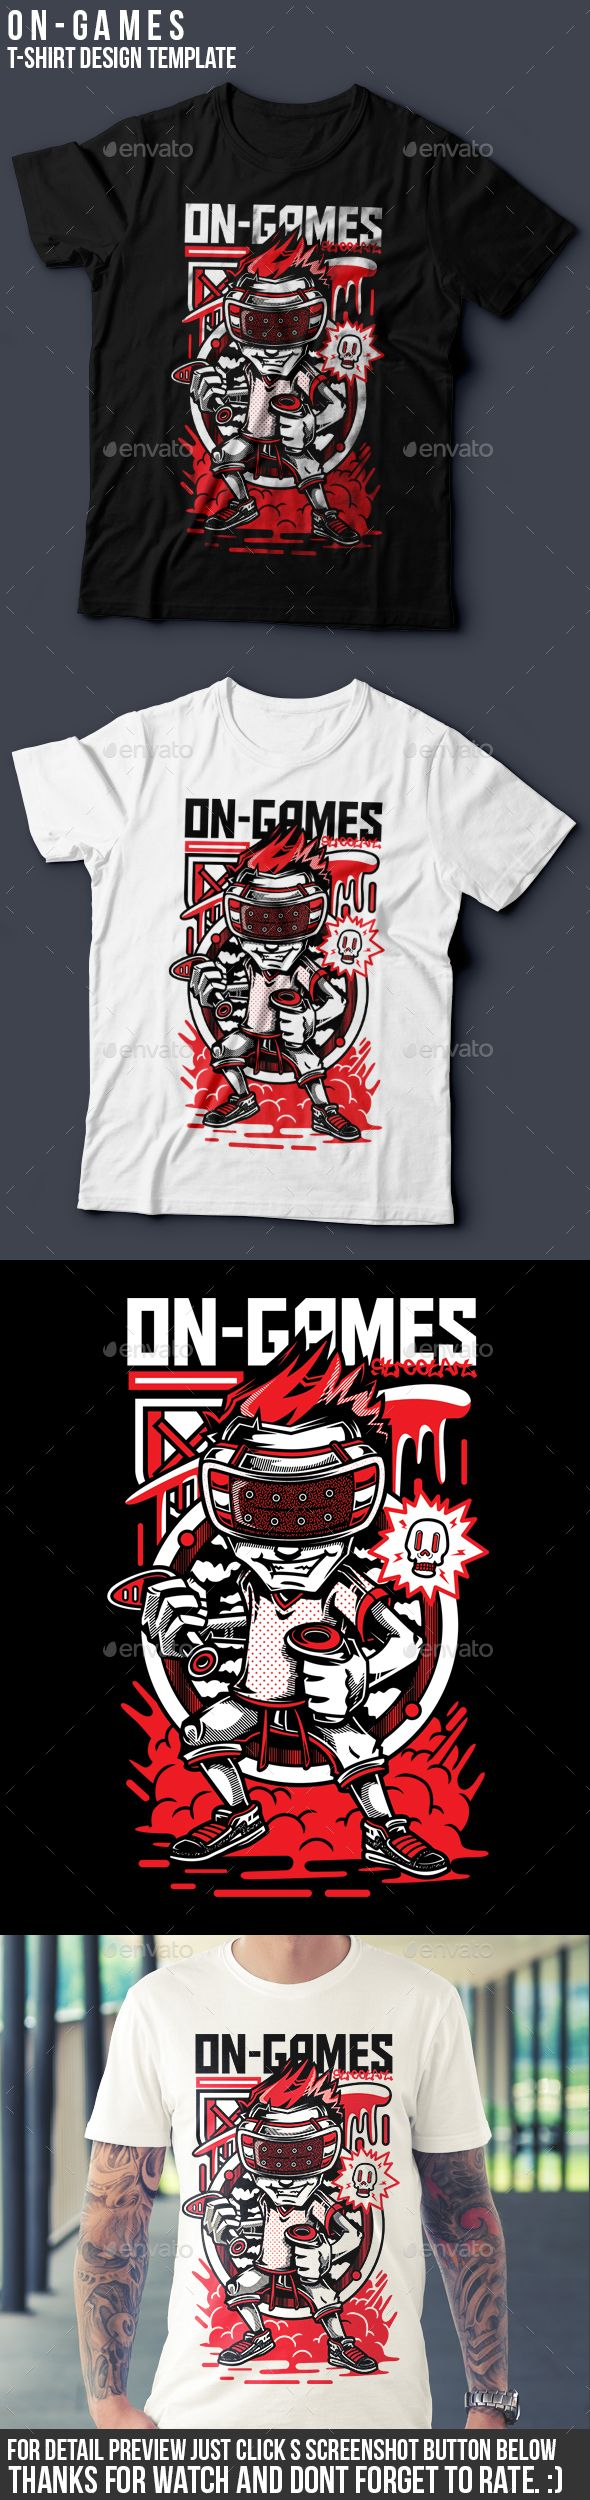 White t shirt eps - On Games T Shirt Design